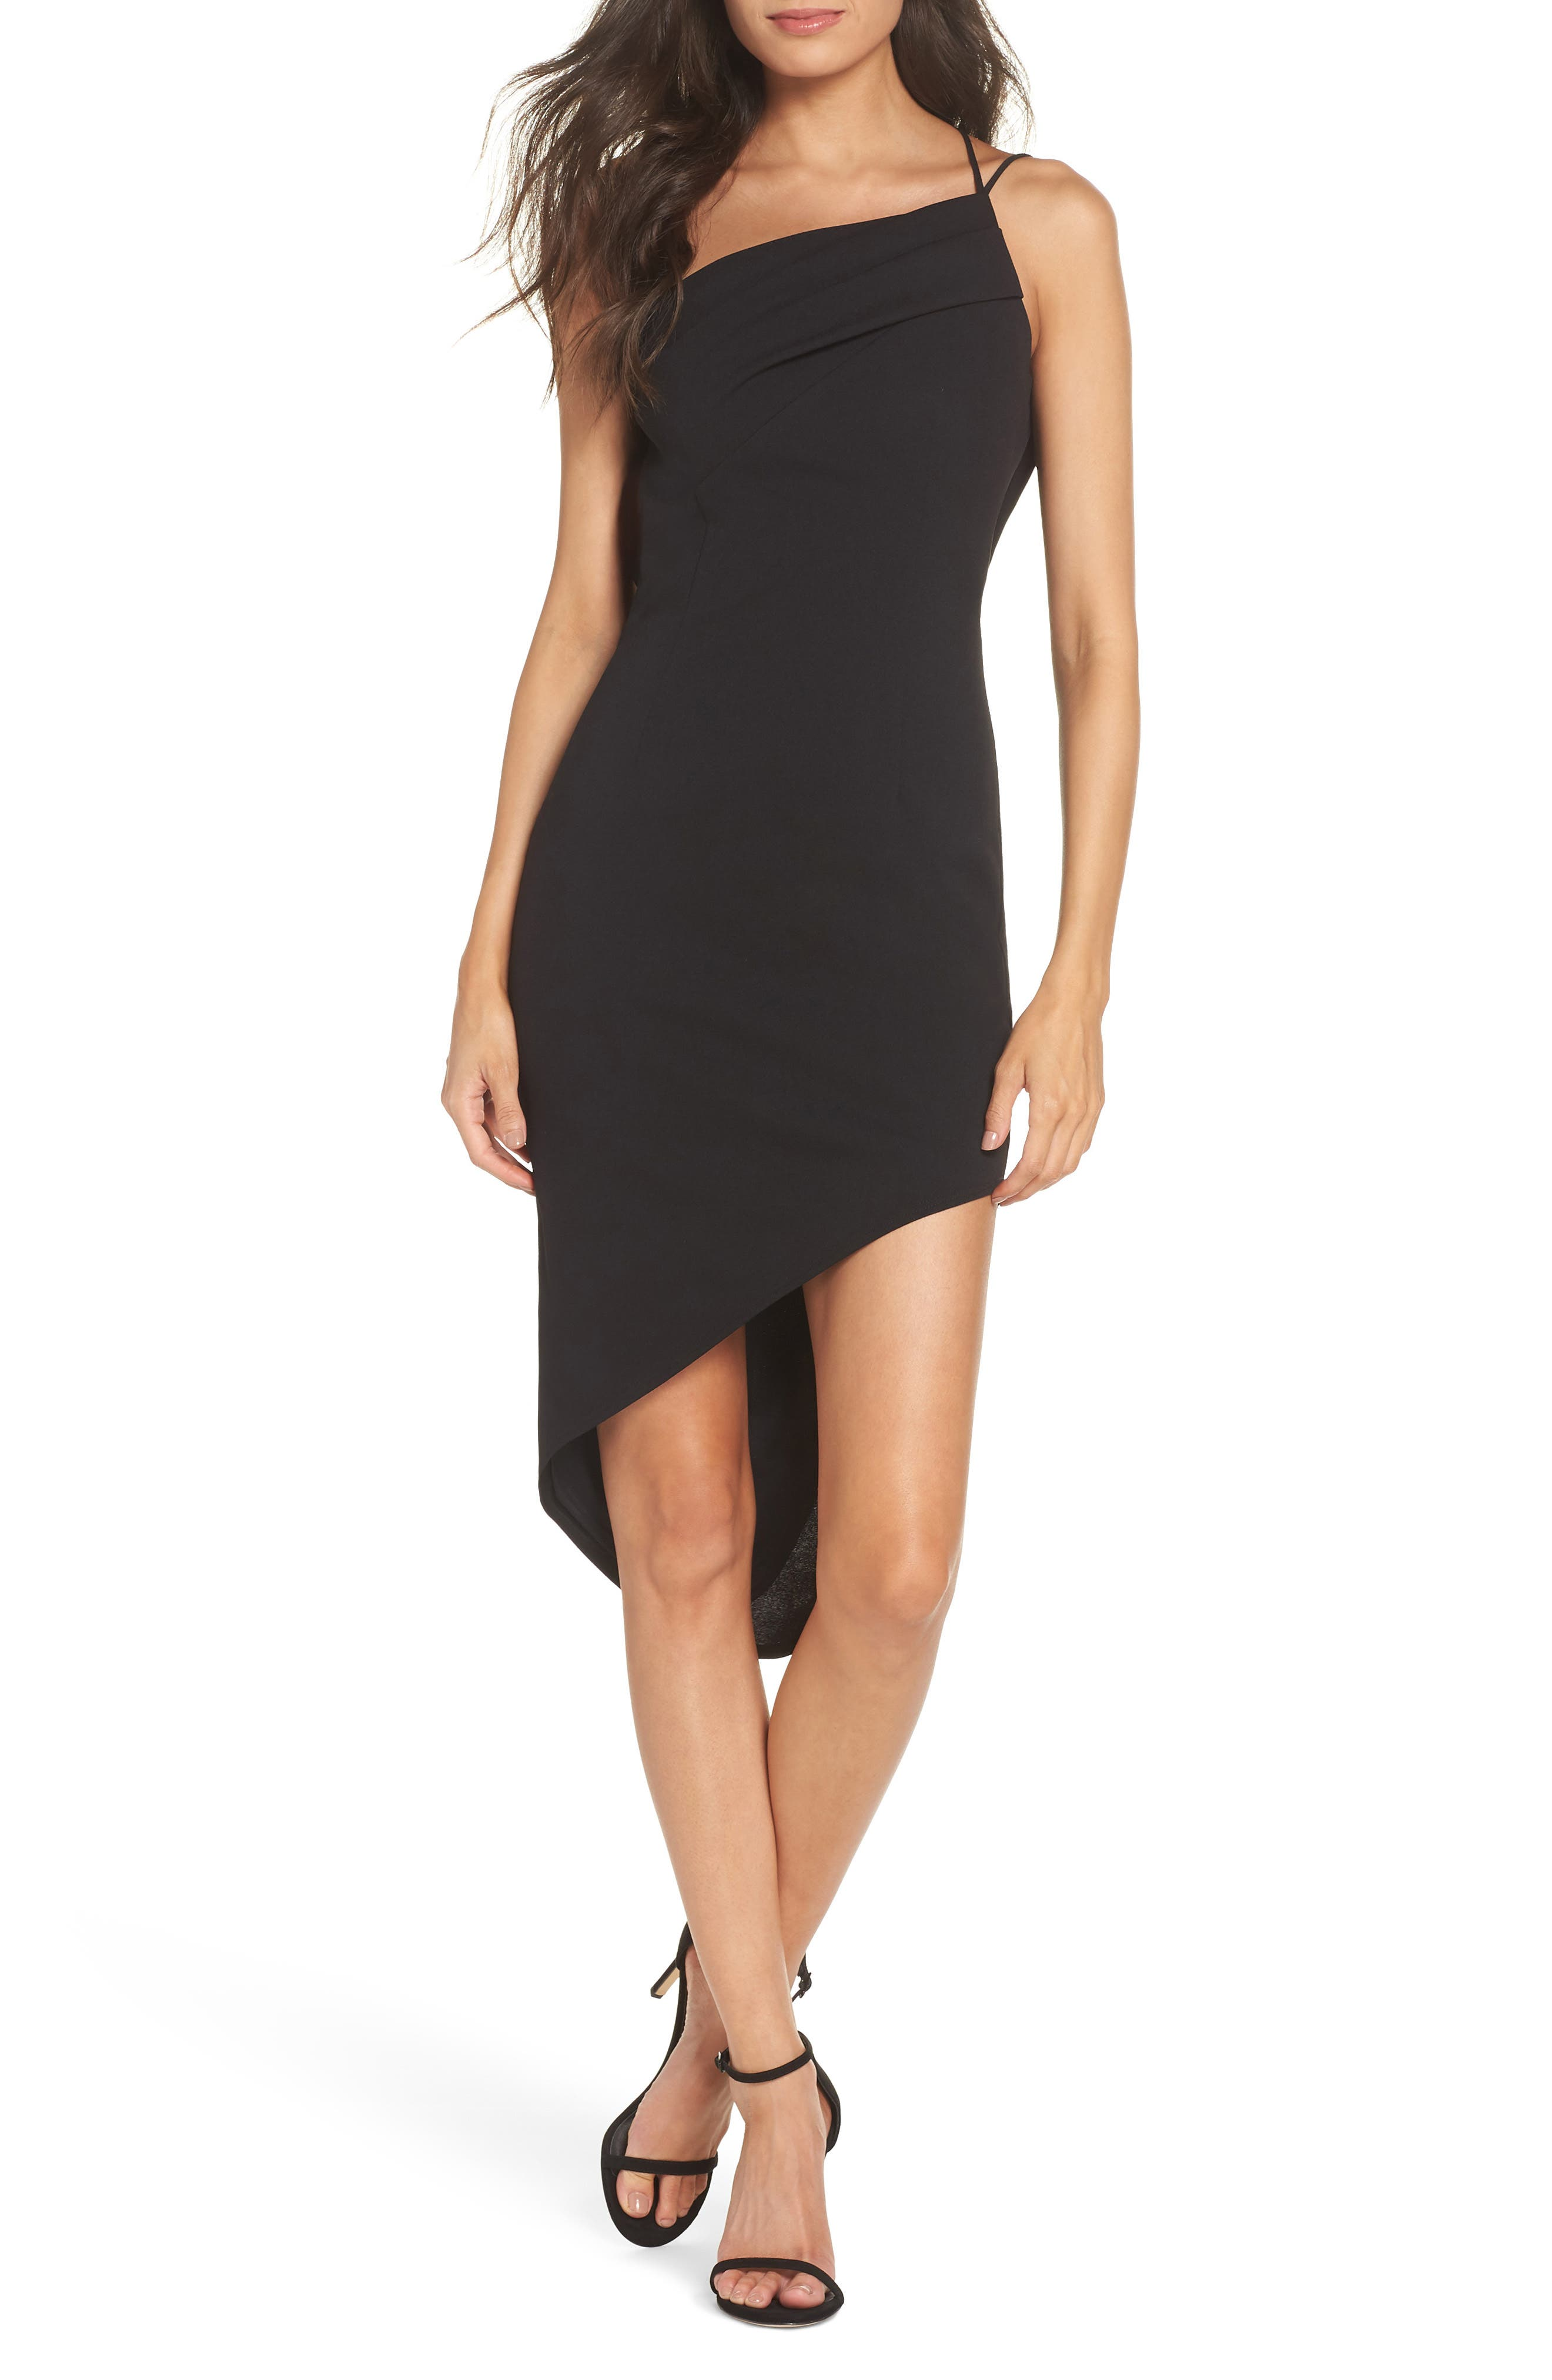 KATIE MAY ONE-SHOULDER ASYMMETRICAL COCKTAIL SHEATH